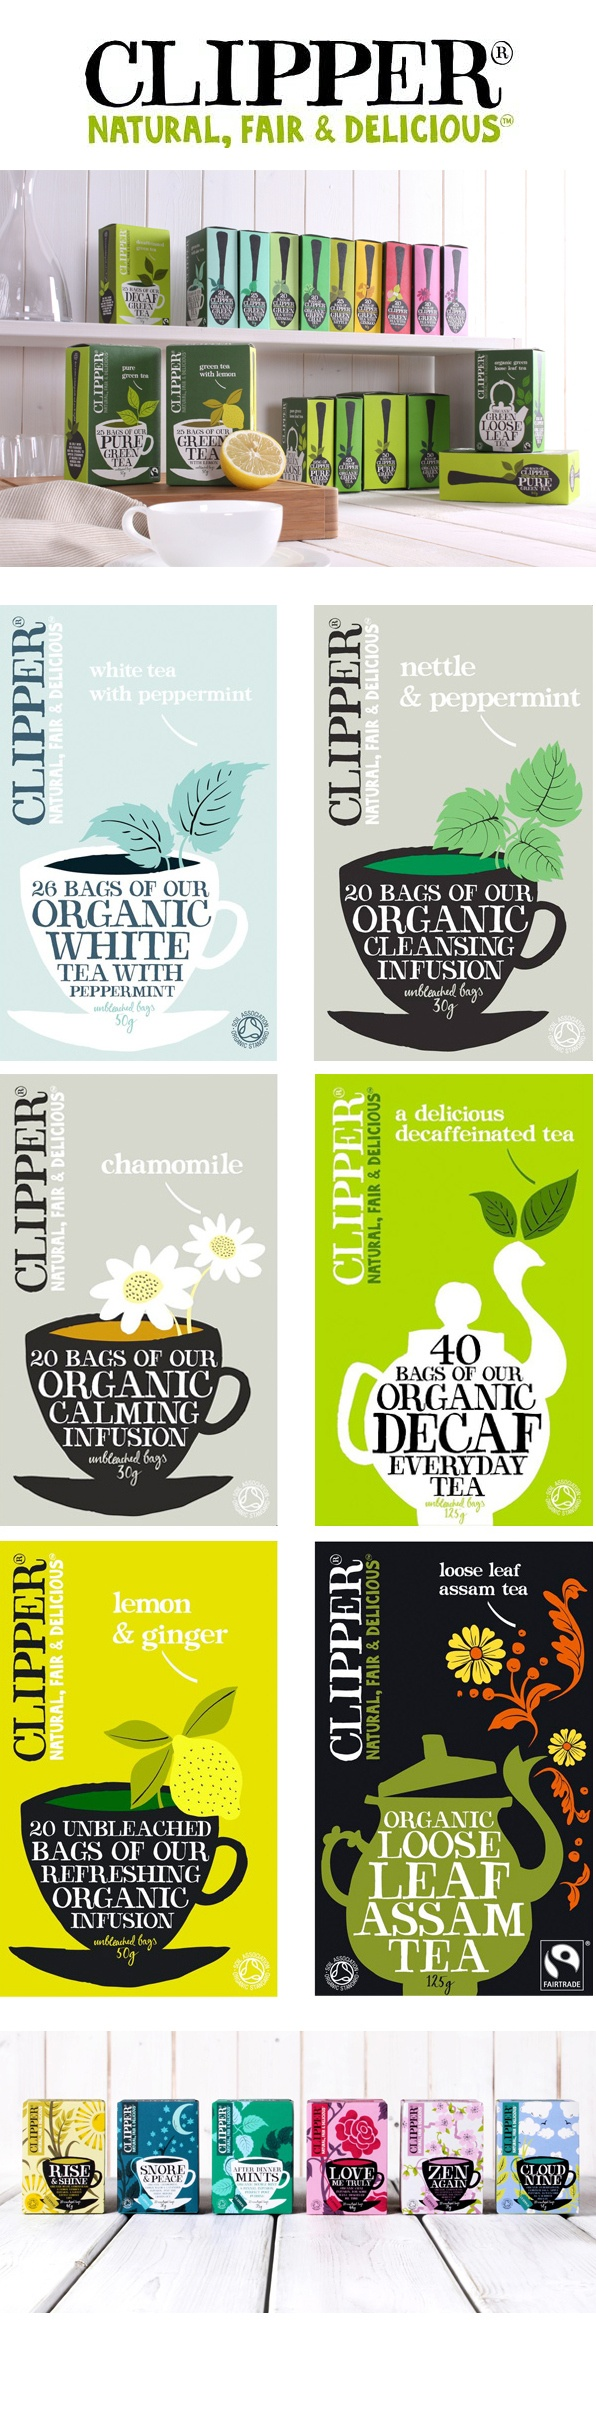 Clipper Tea packaging by Big Fish